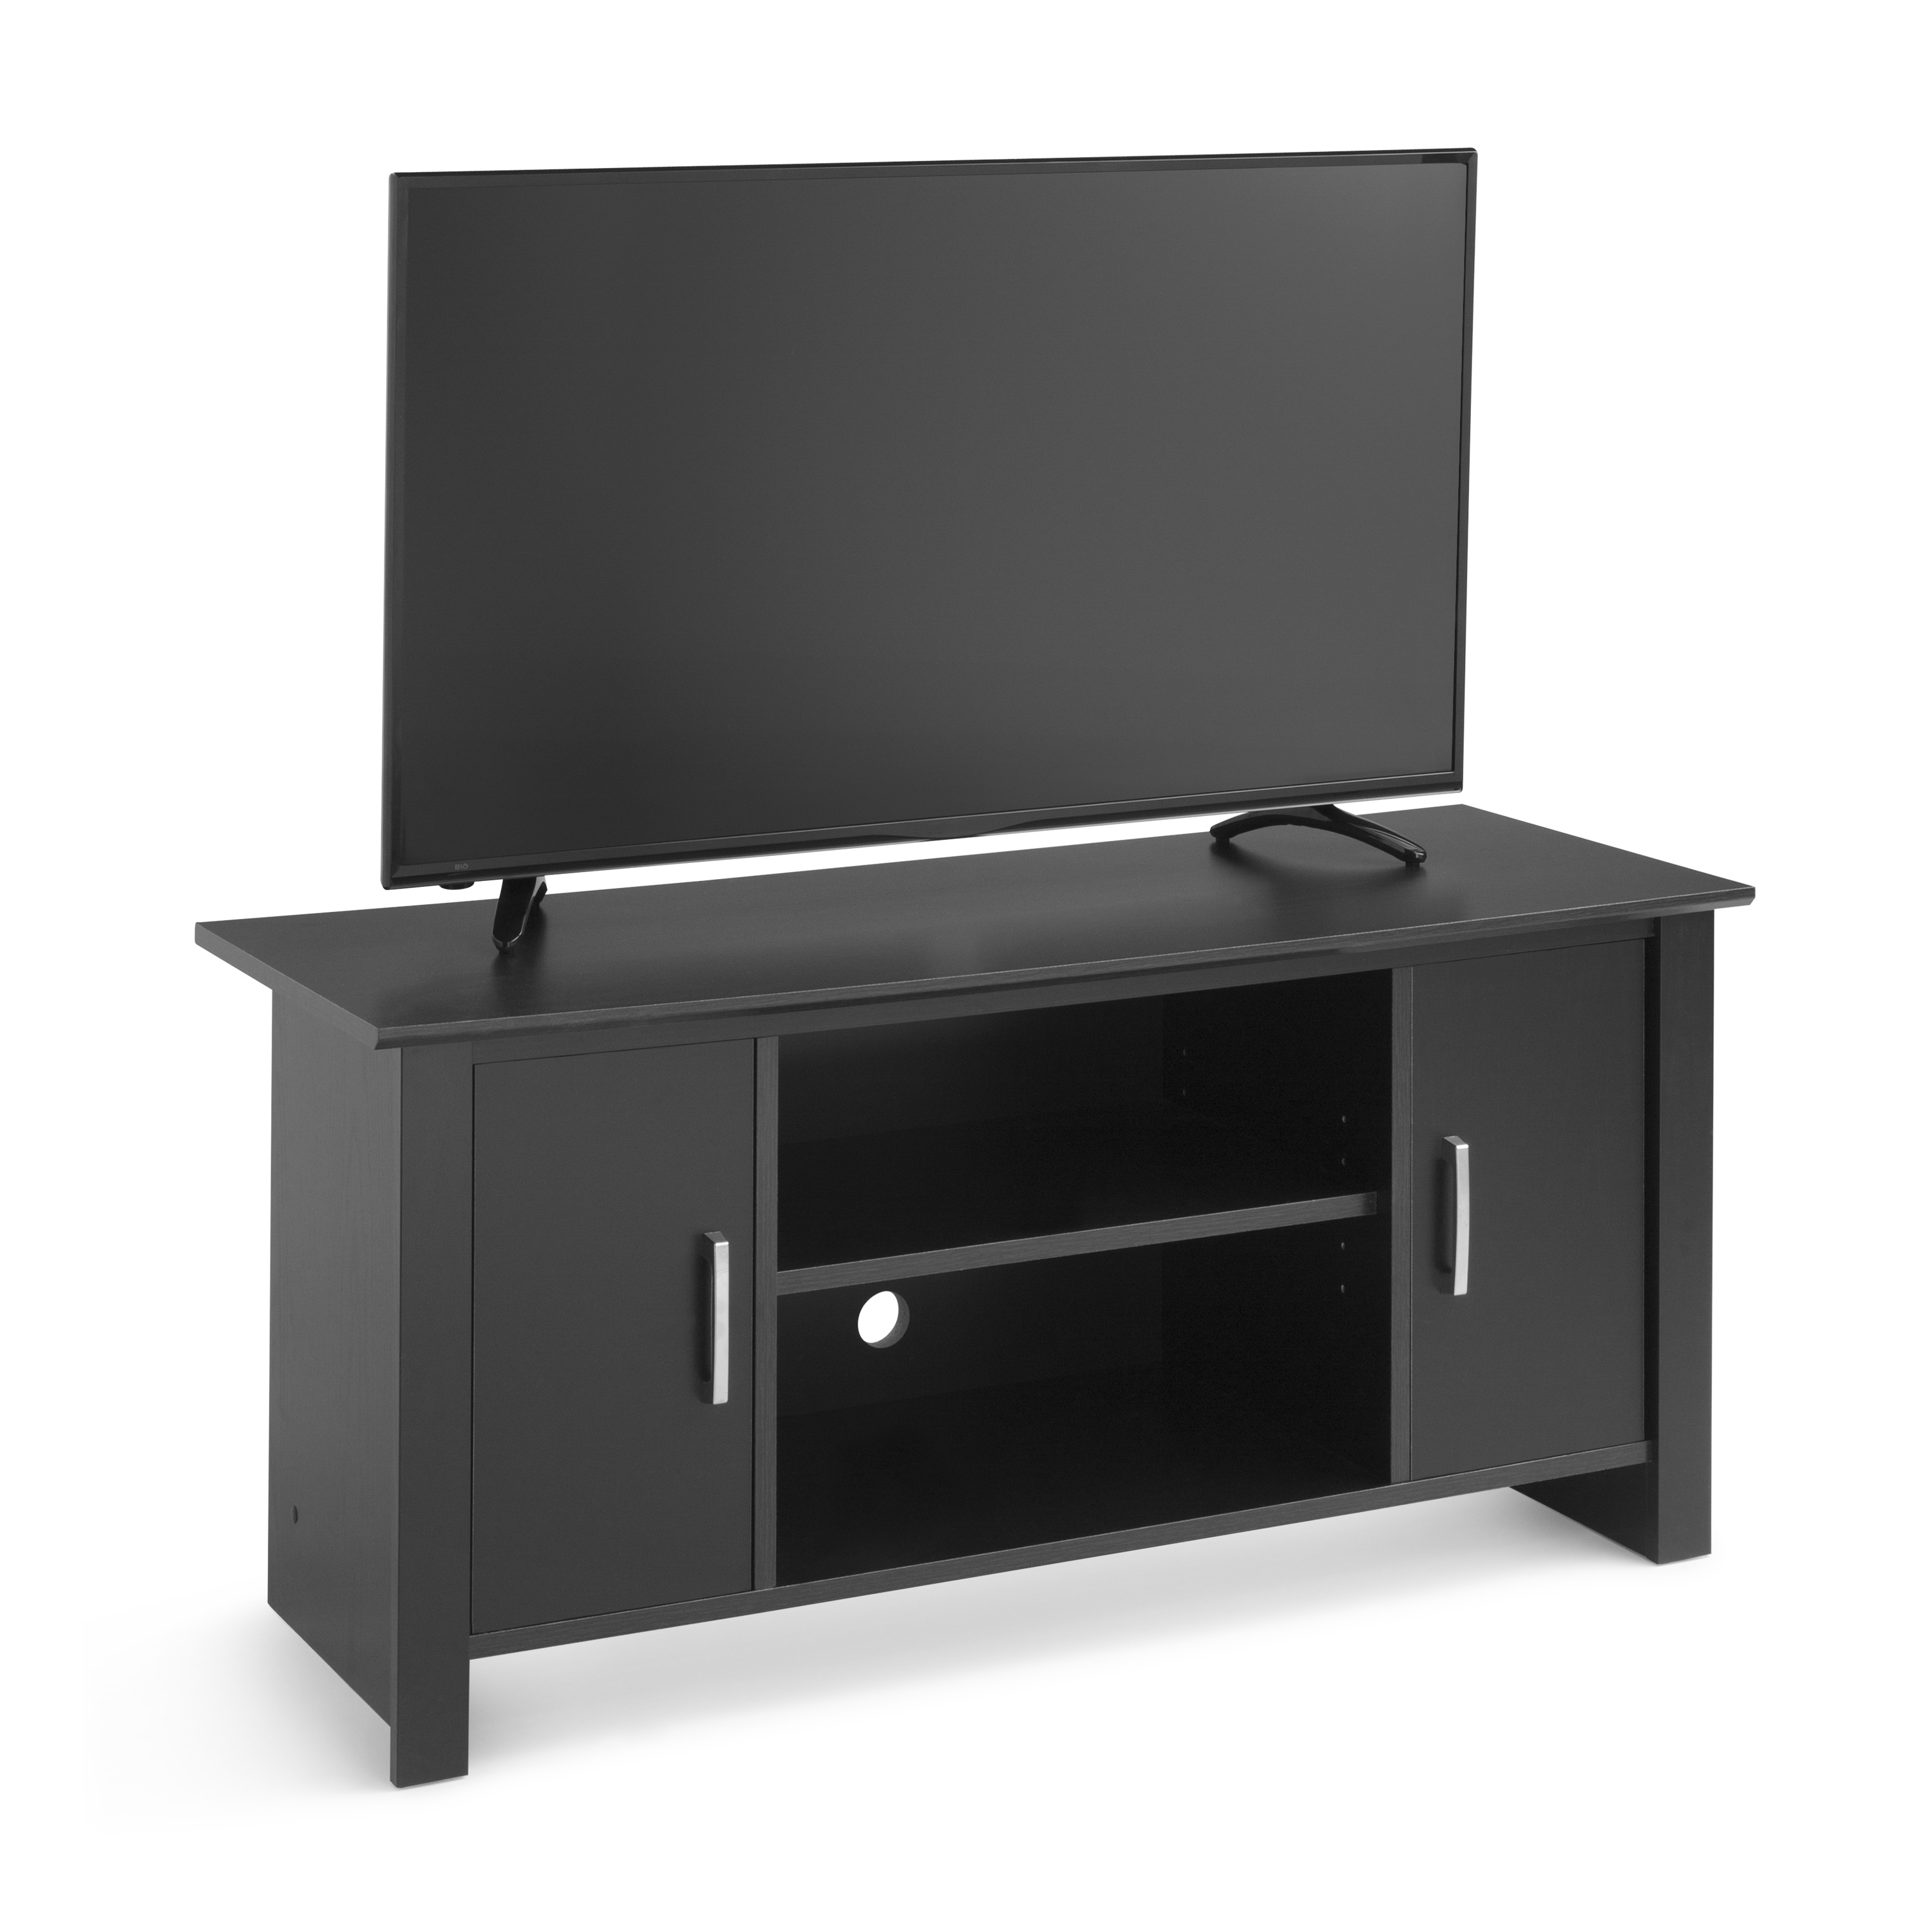 "Mainstays Tv Stand For Flat Screen Tvs Up To 47"", True Black Oak With Regard To Canyon 54 Inch Tv Stands (View 8 of 20)"